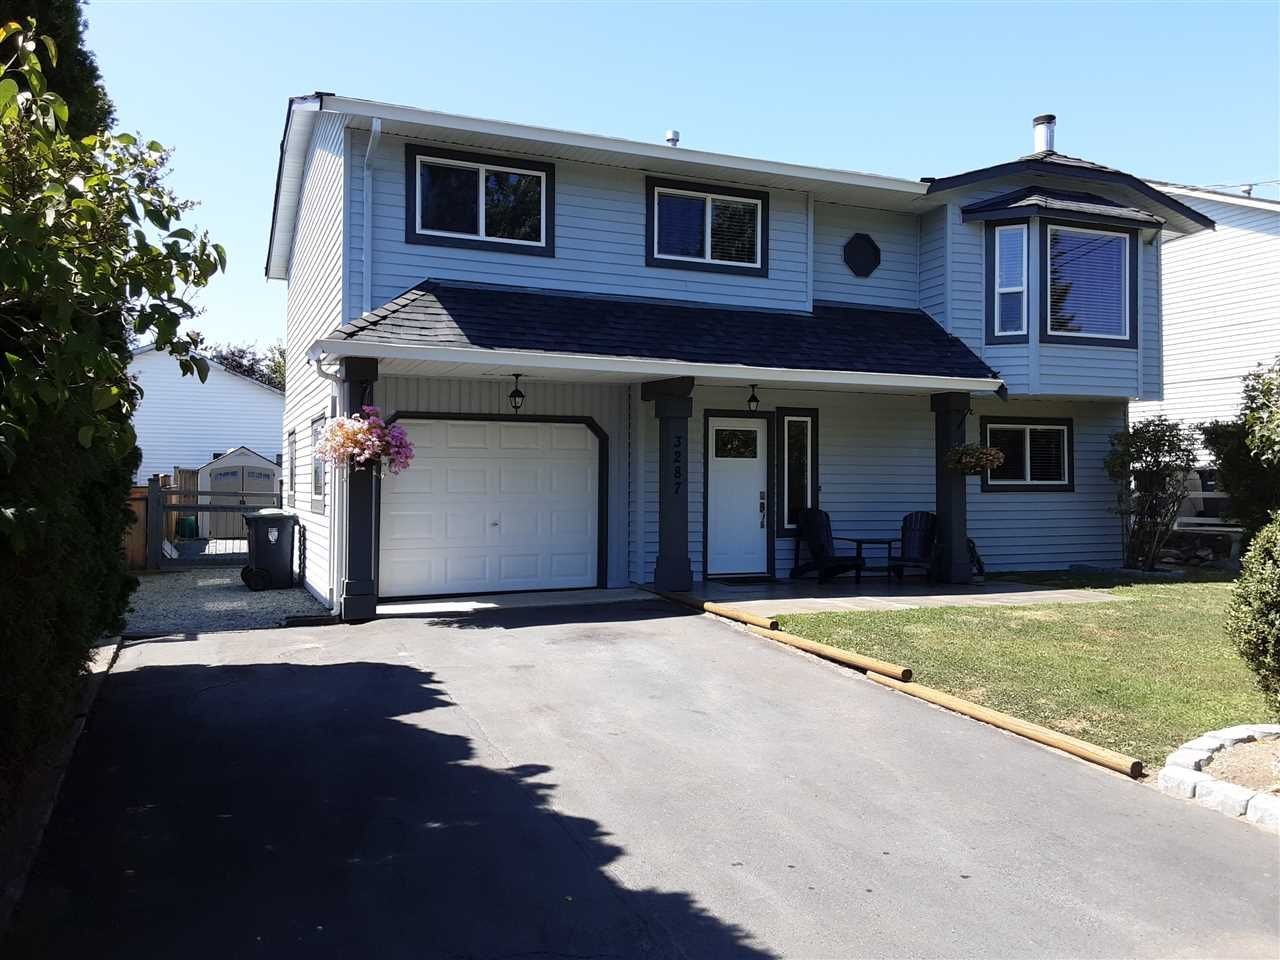 Main Photo: 3287 274 Street in Langley: Aldergrove Langley House for sale : MLS®# R2484329